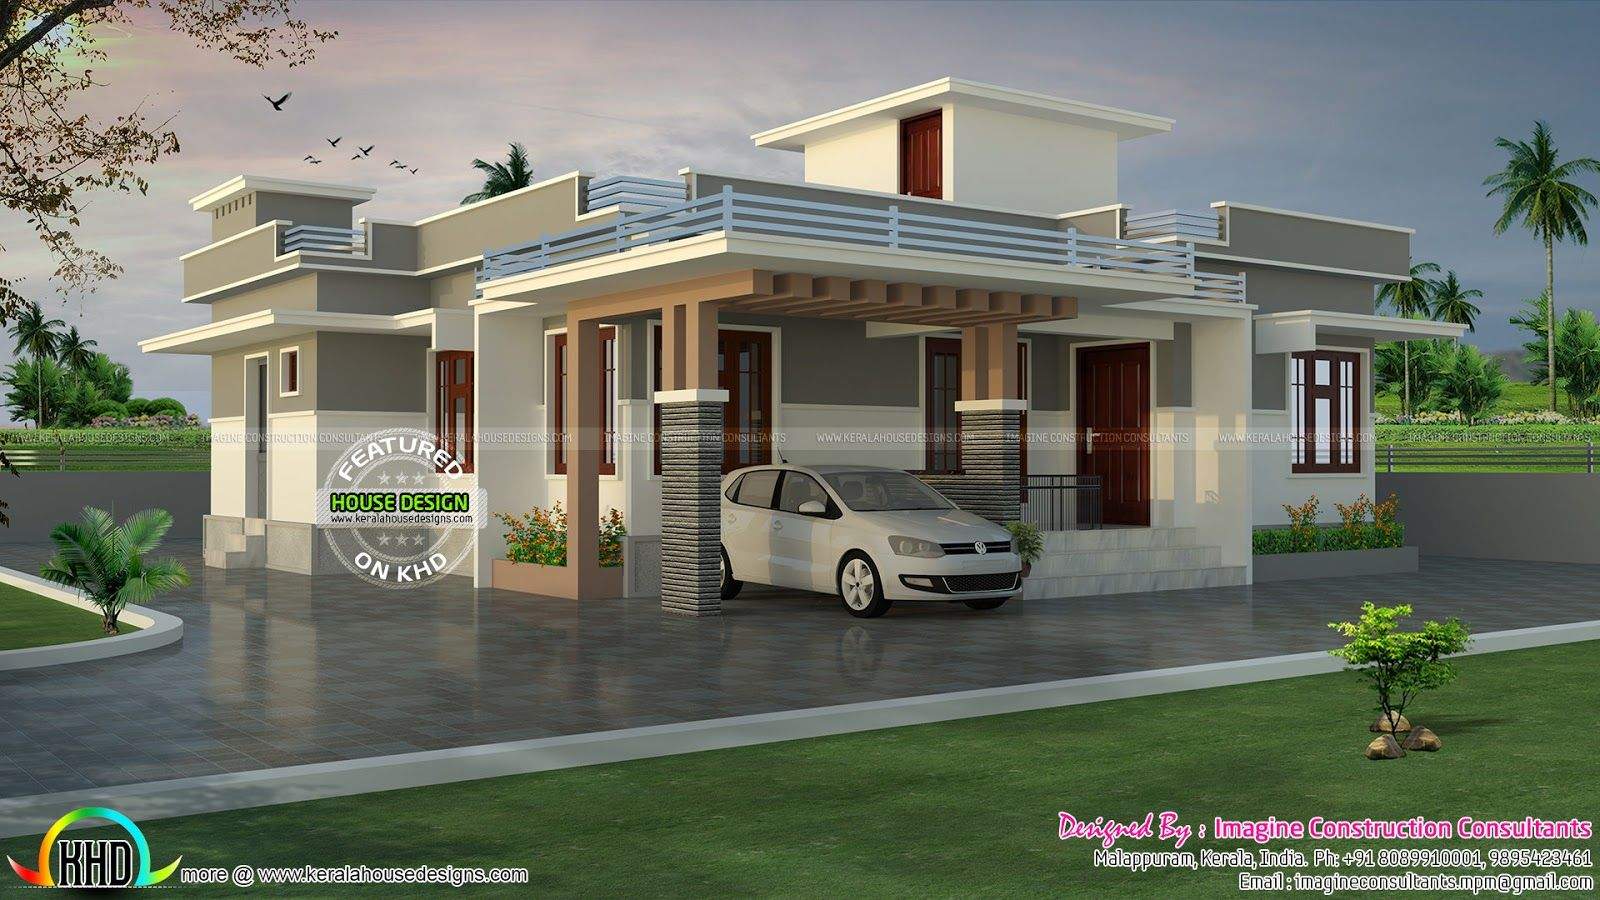 1200 Sq Ft Rs 18 Lakhs Cost Estimated House Plan House Architecture Design Kerala House Design Bungalow House Design